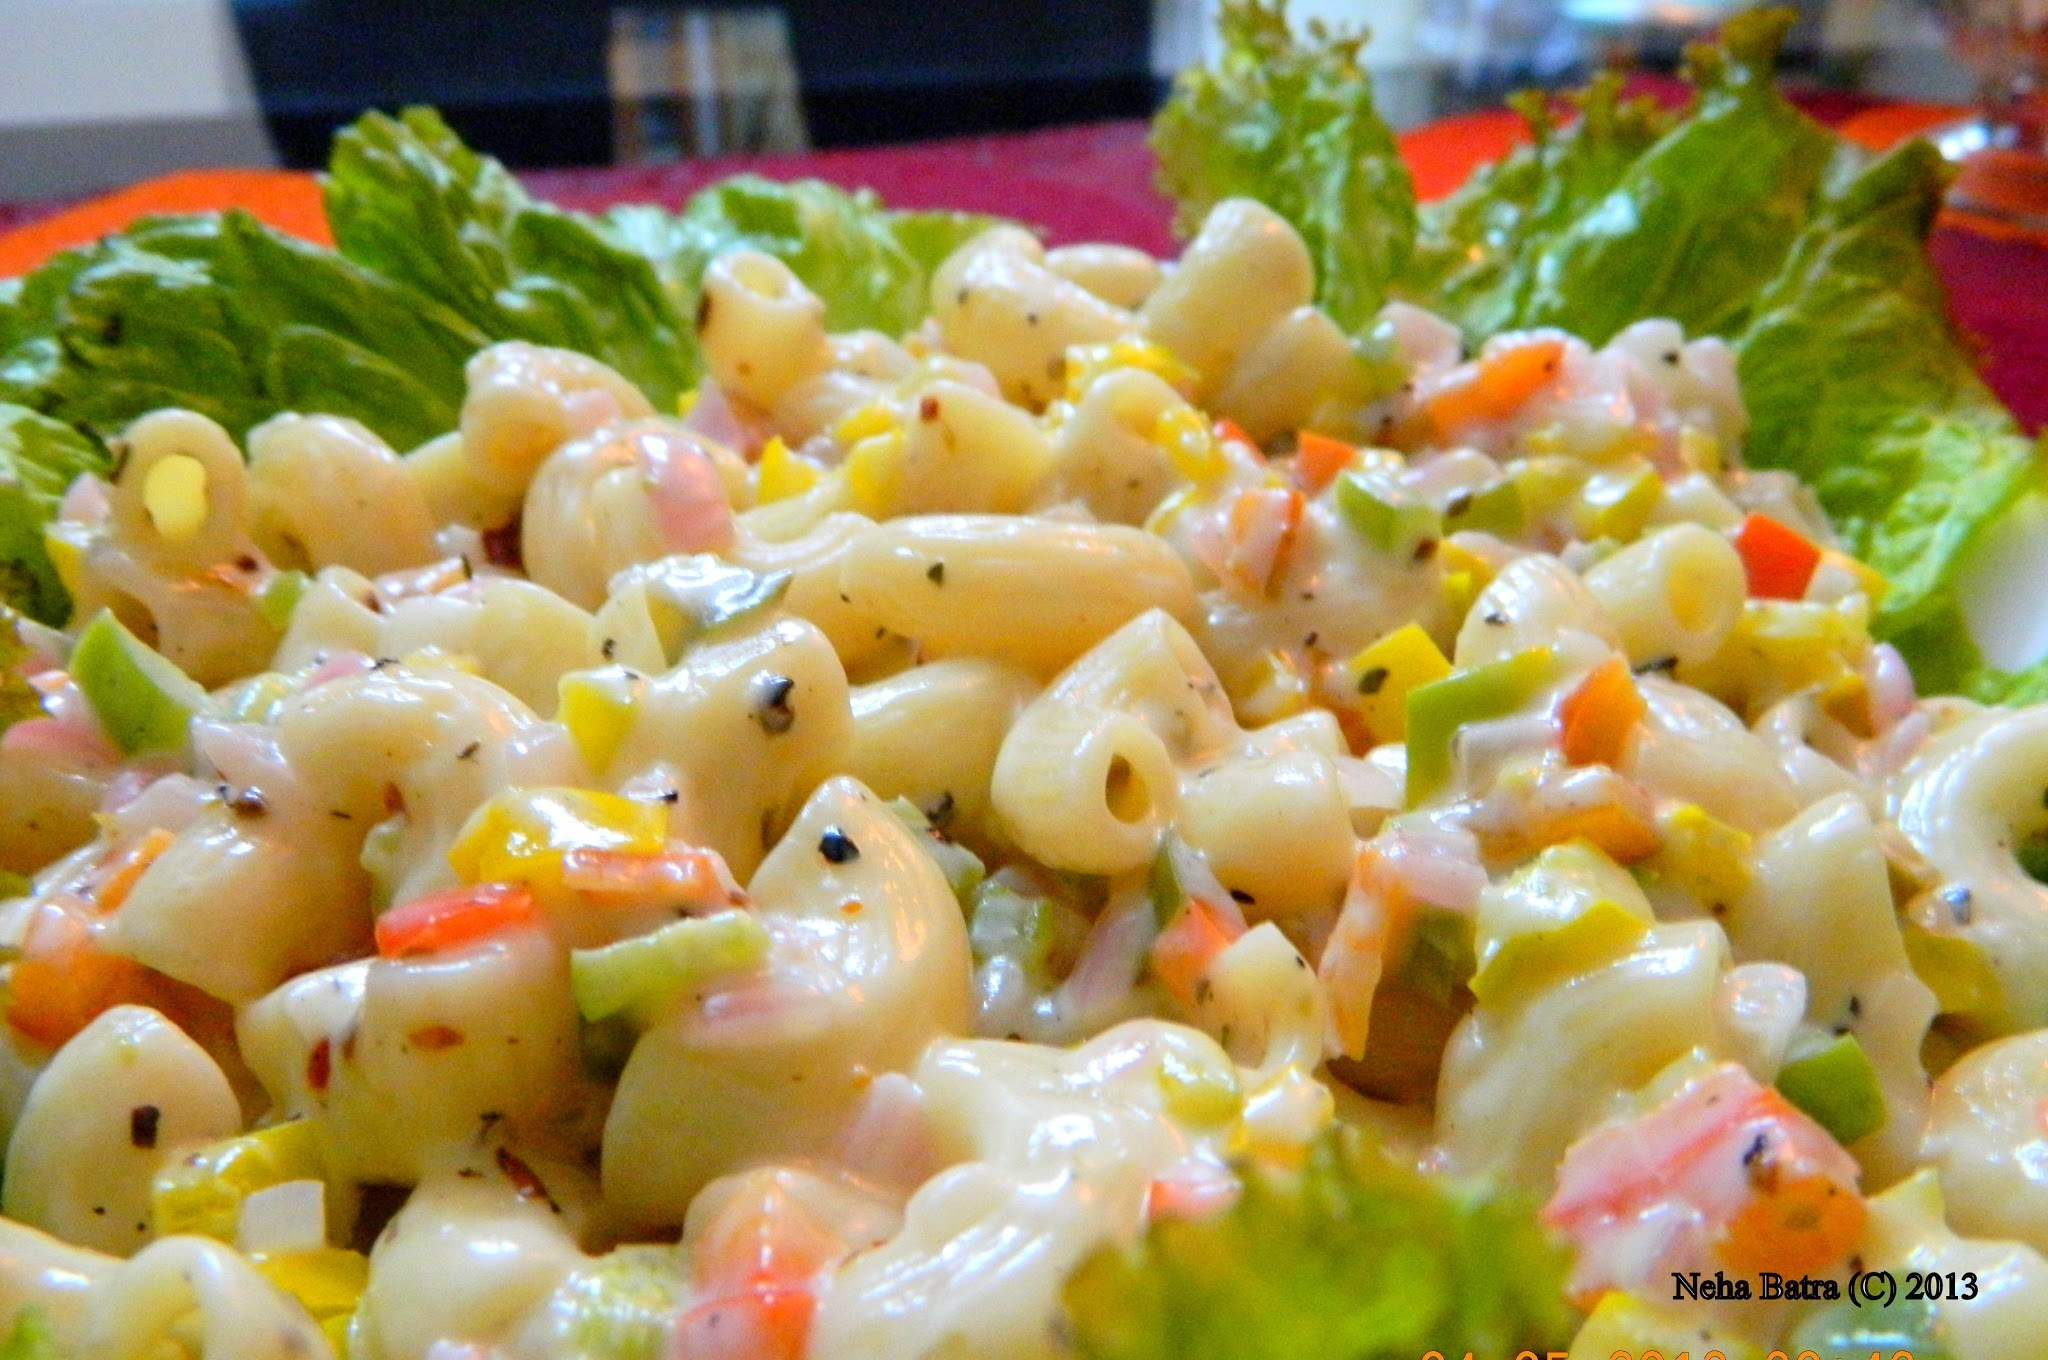 Cold Macaroni Salad